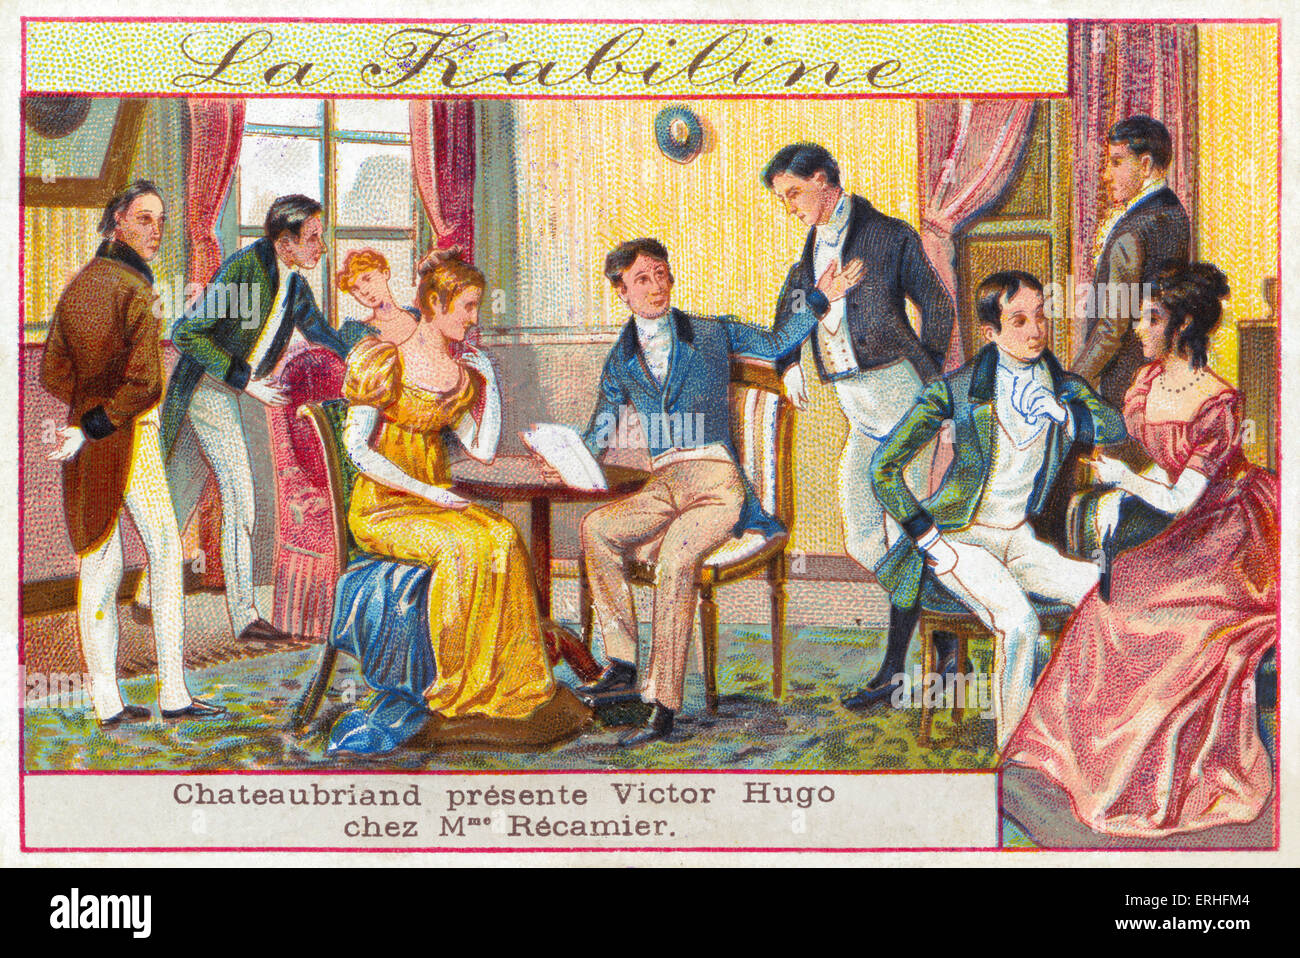 Literary salon - illustration of  Victor Hugo being introduced to Mme Recamier by Francois-Rene de Chateaubriand. - Stock Image